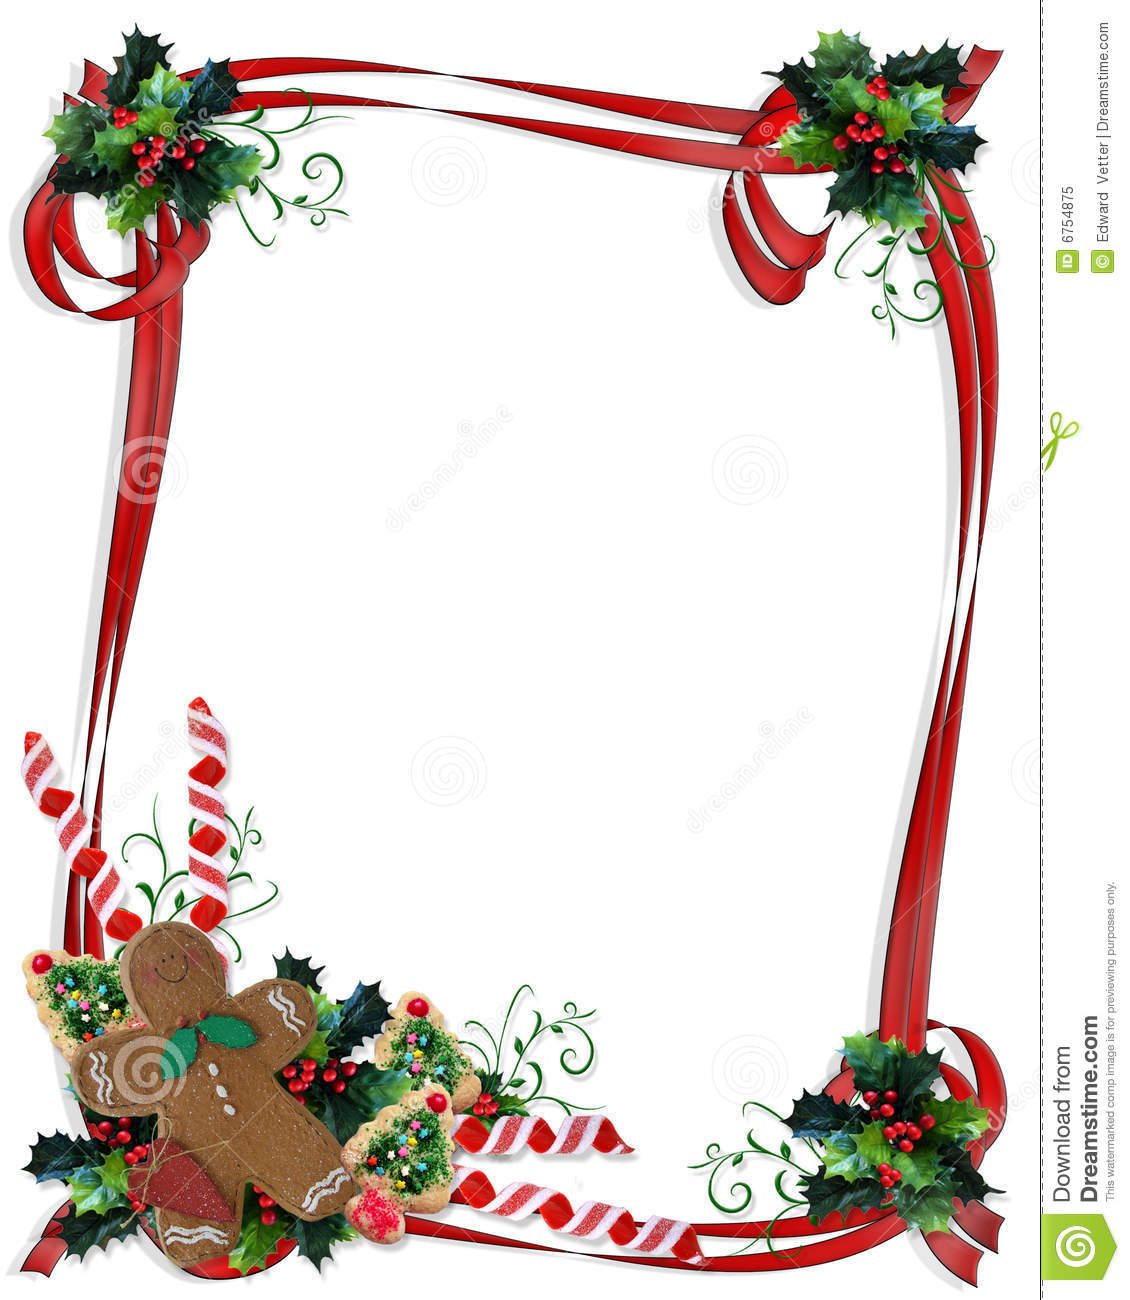 Christmas borders free download vector freeuse download Download christmas borders free - ClipartFest vector freeuse download